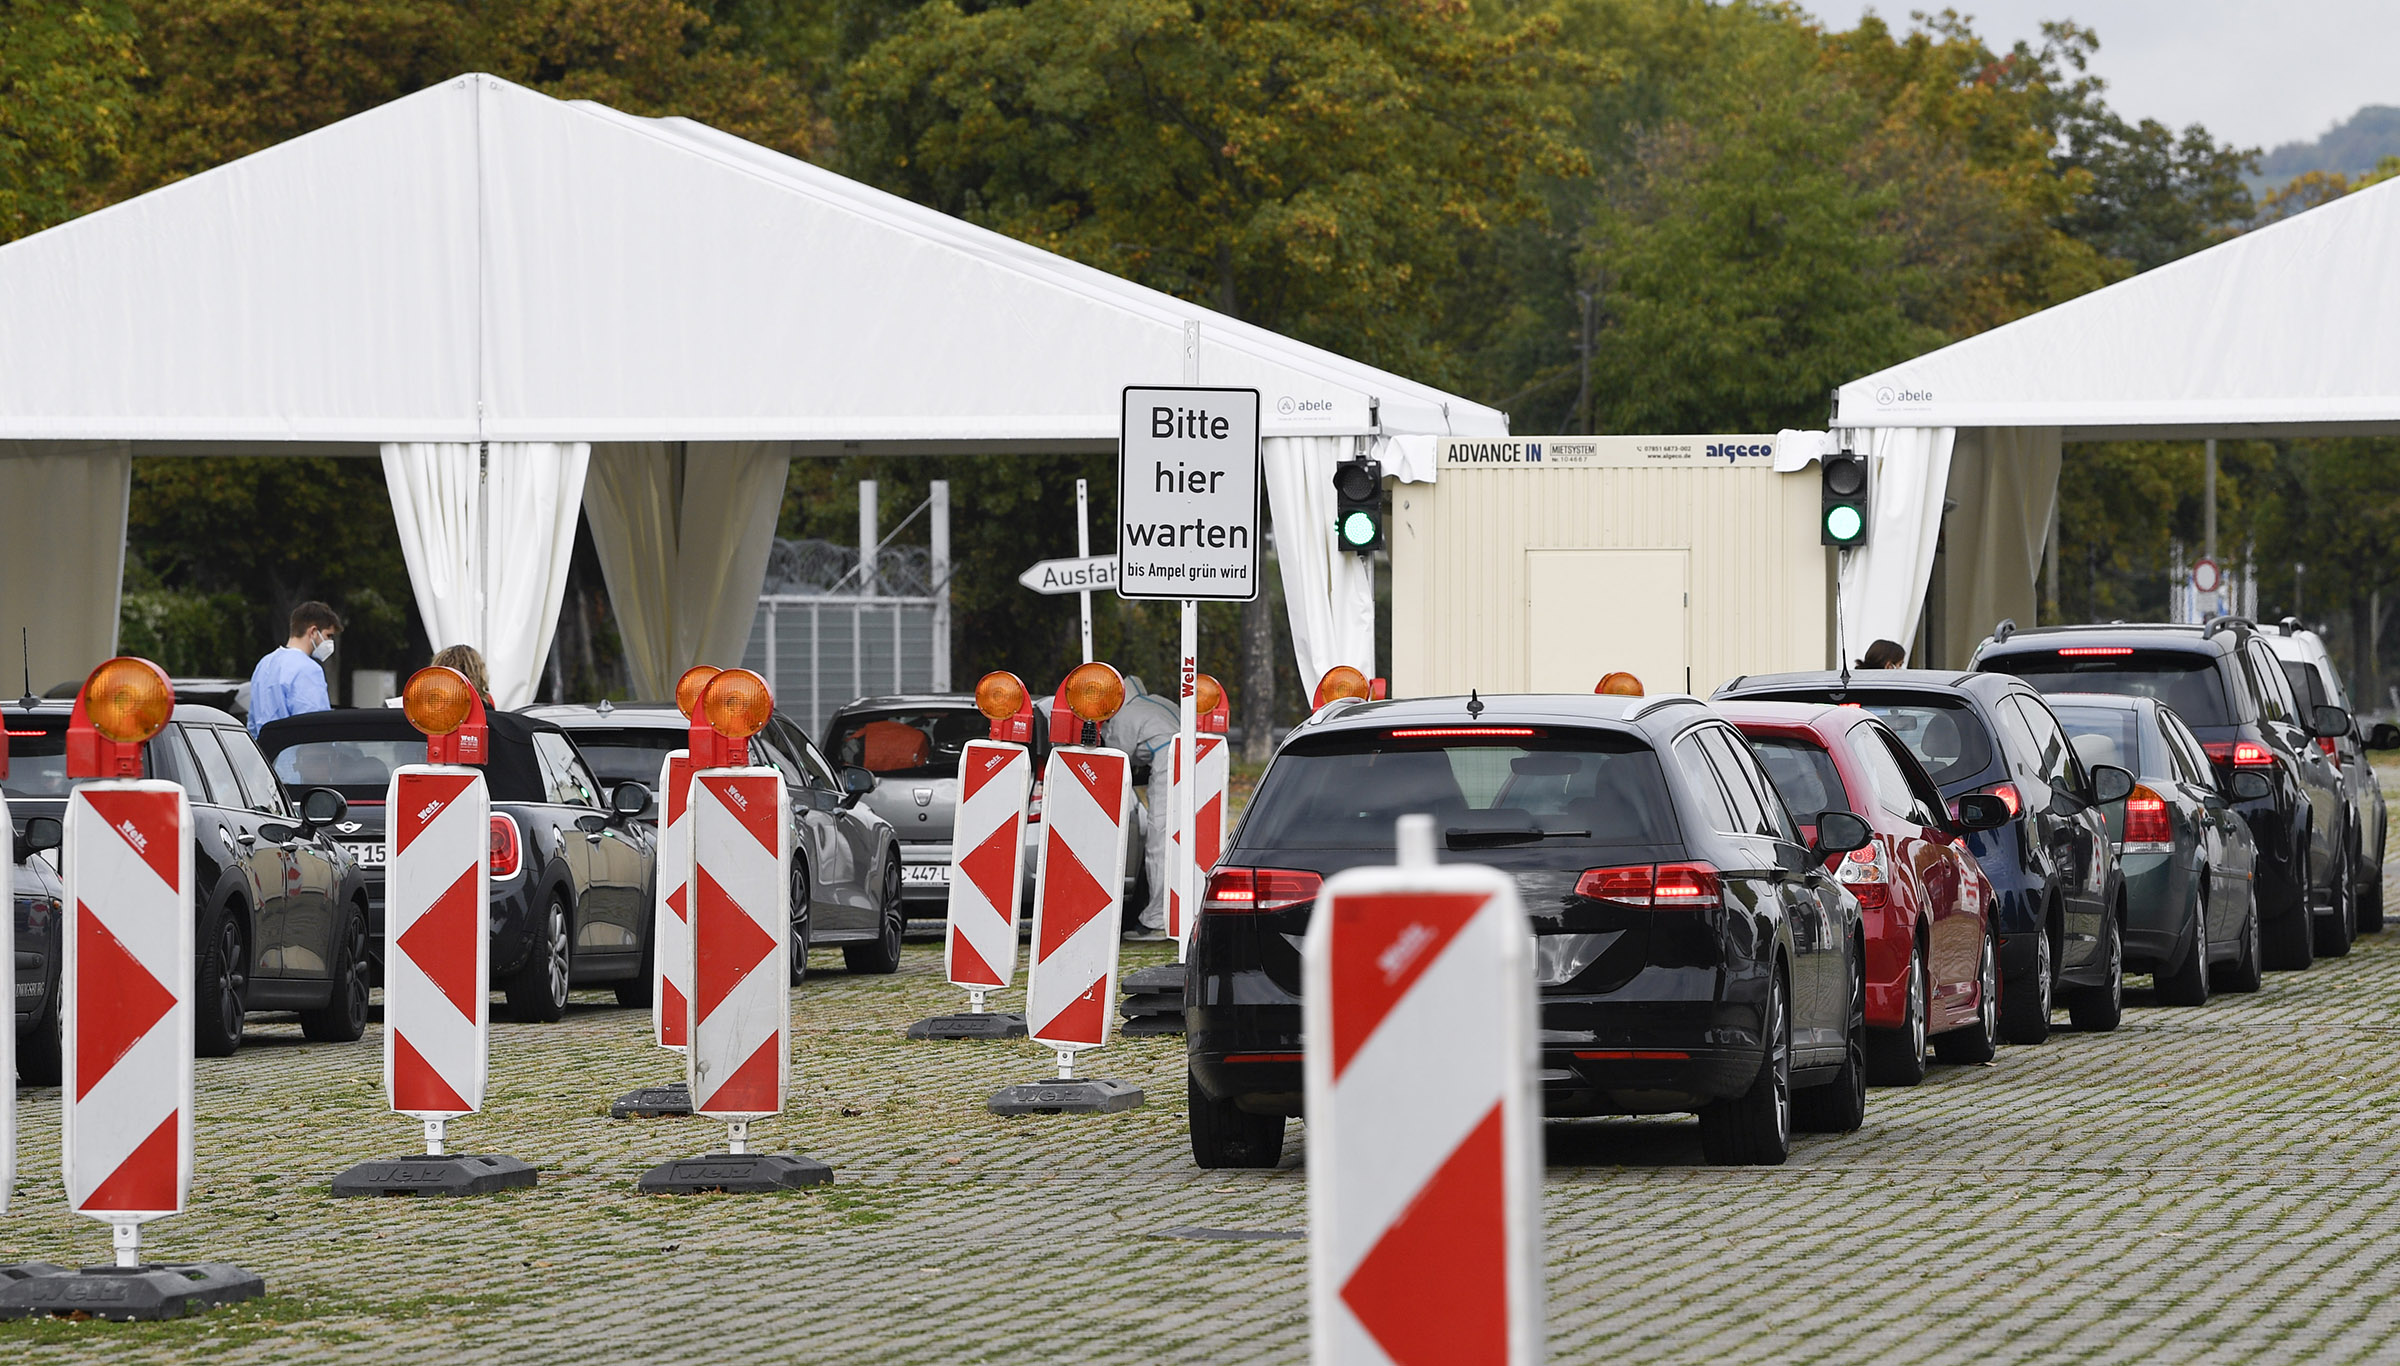 Cars line up at the coronavirus testing drive-in station at Cannstatter Wasen in Stuttgart, Germany, on October 13, amid the new coronavirus COVID-19 pandemic.